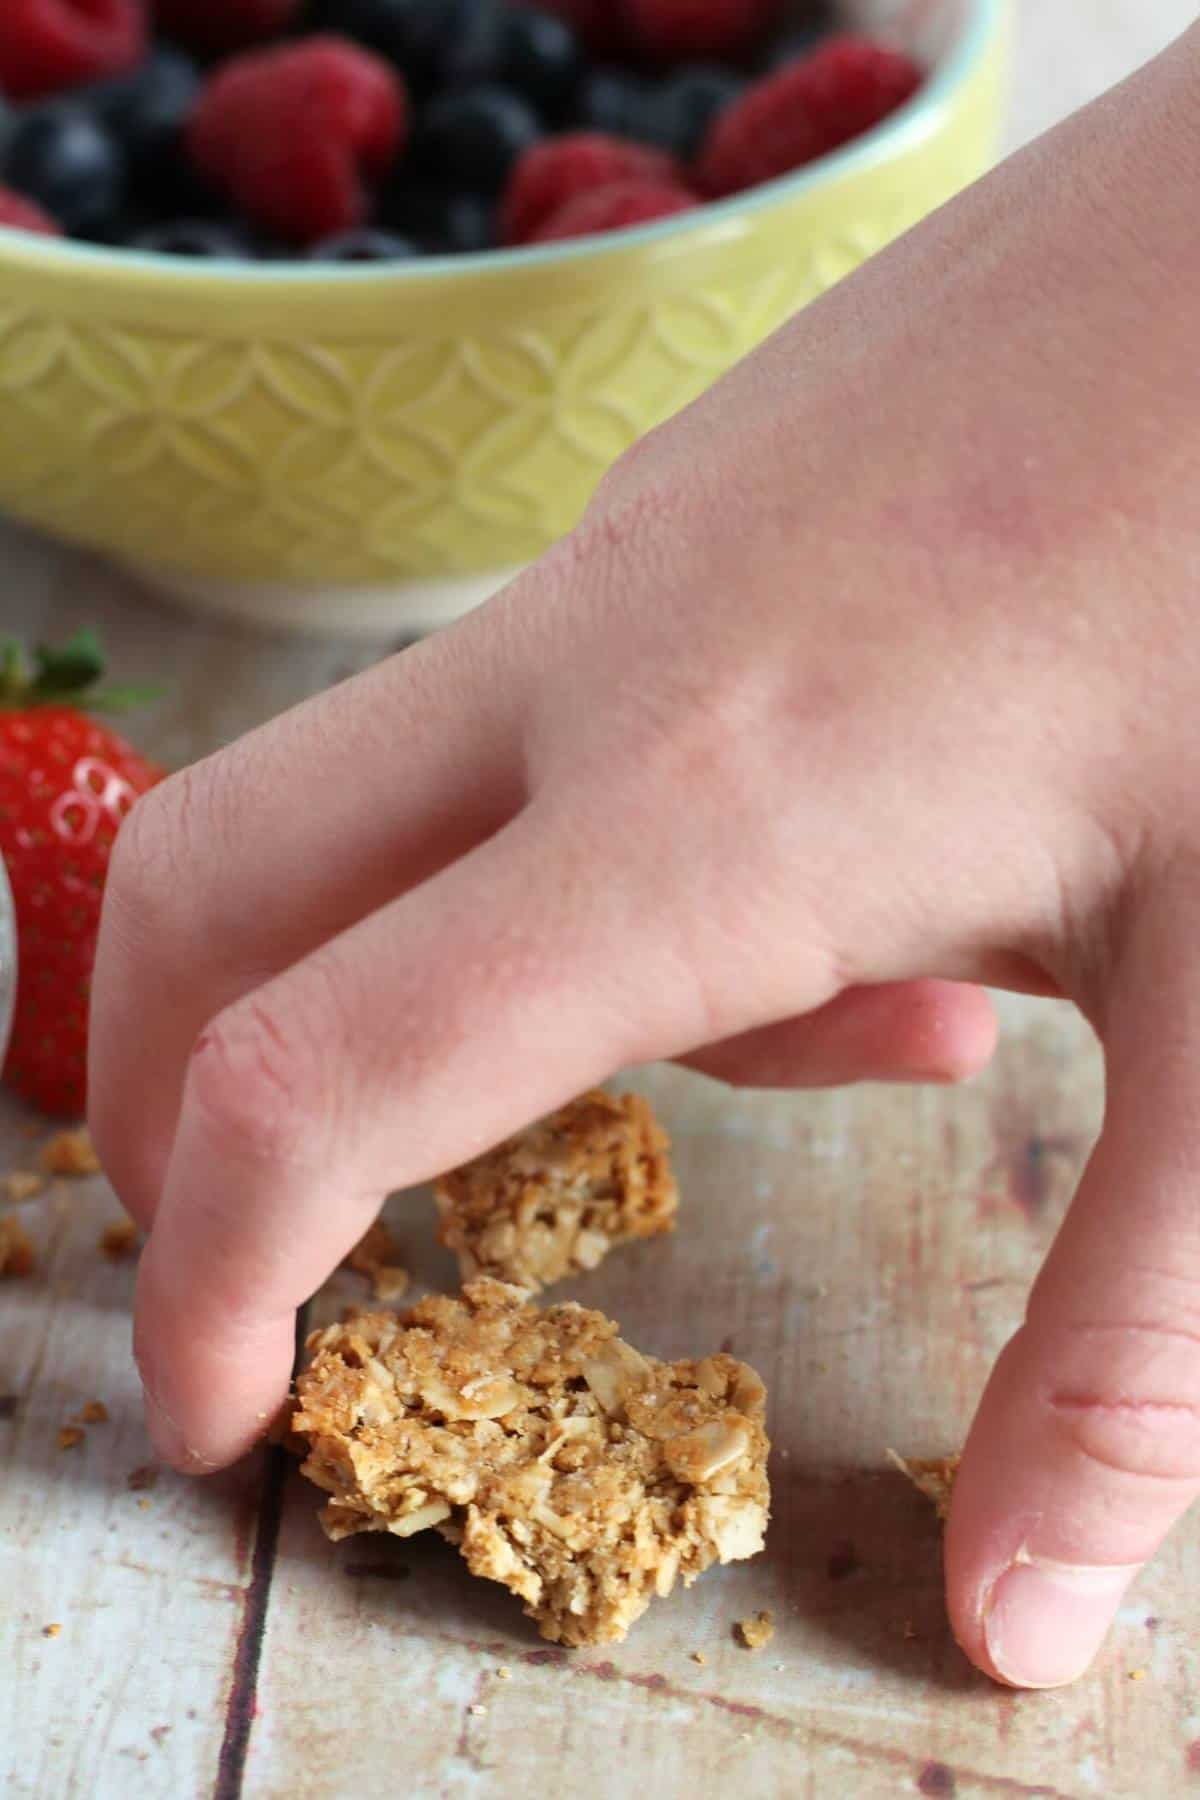 Child's hand picking up a piece of chunky granola